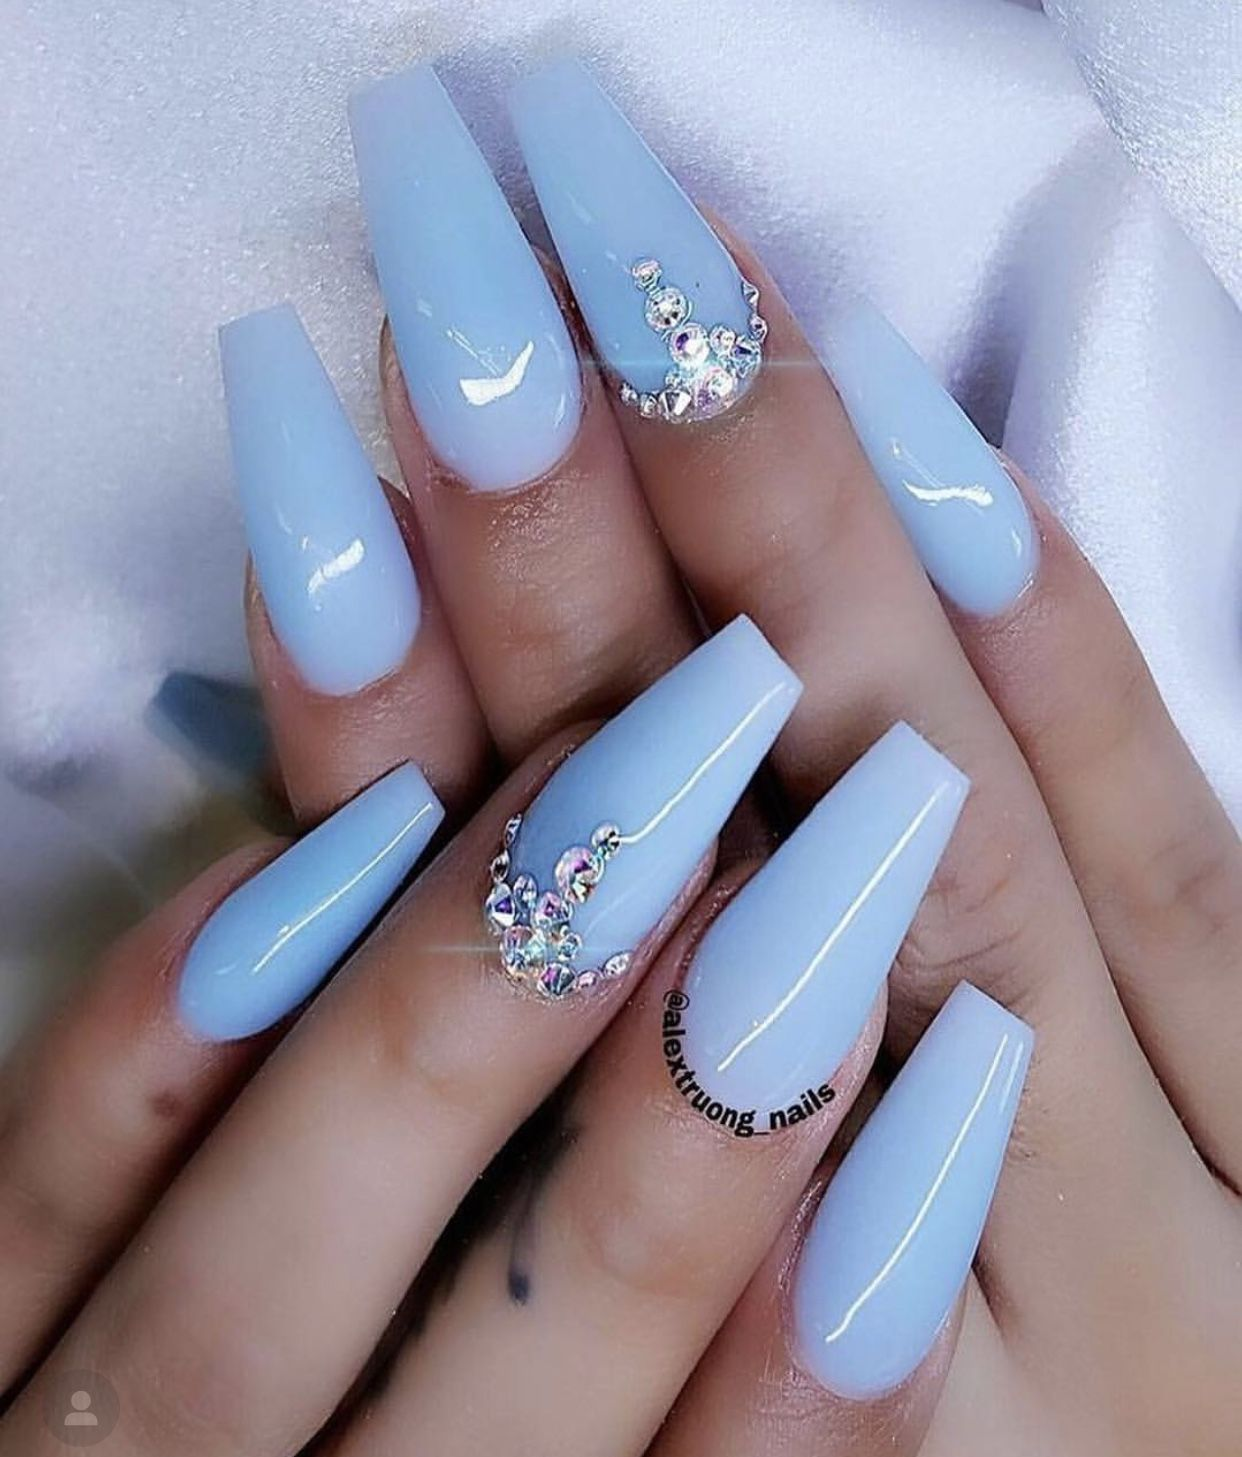 Pin By Dalanie Stolleis On Nails Blue Gel Nails Blue Coffin Nails Blue Acrylic Nails